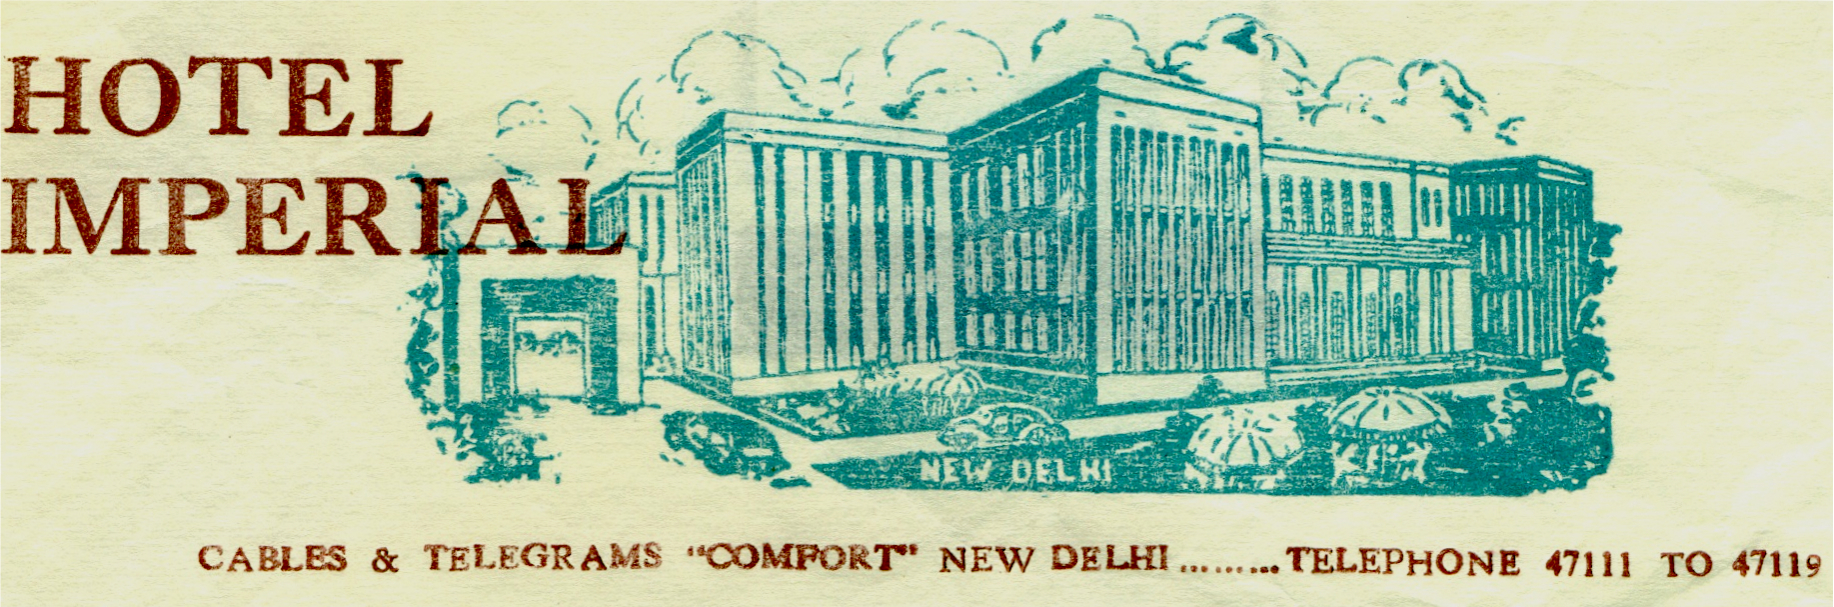 Hotel Imperial in 1958 - New Delhi, India